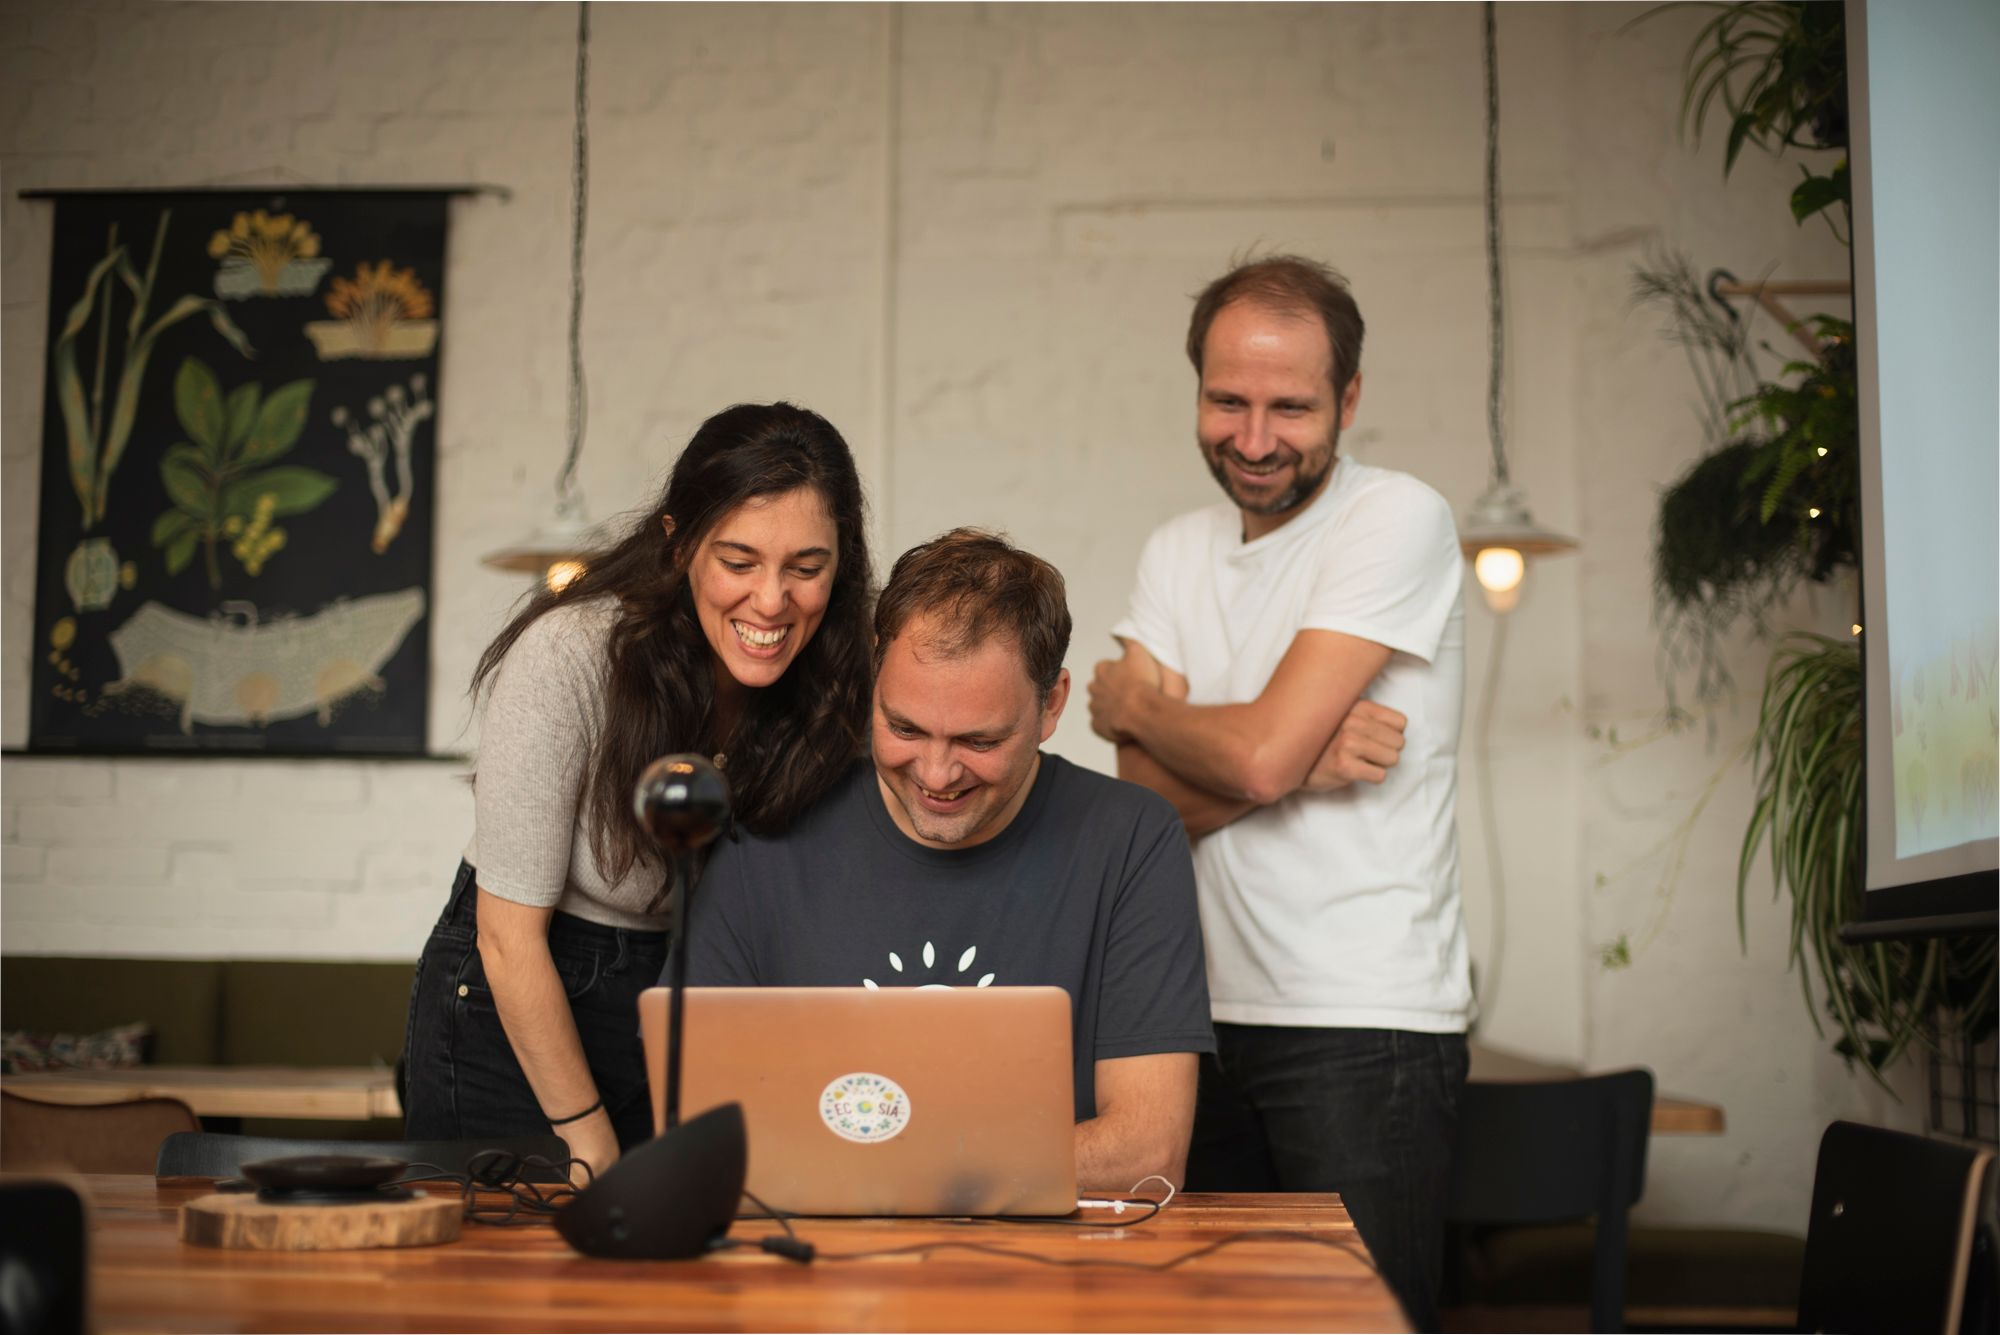 Three team members look onto a laptop, smiling.